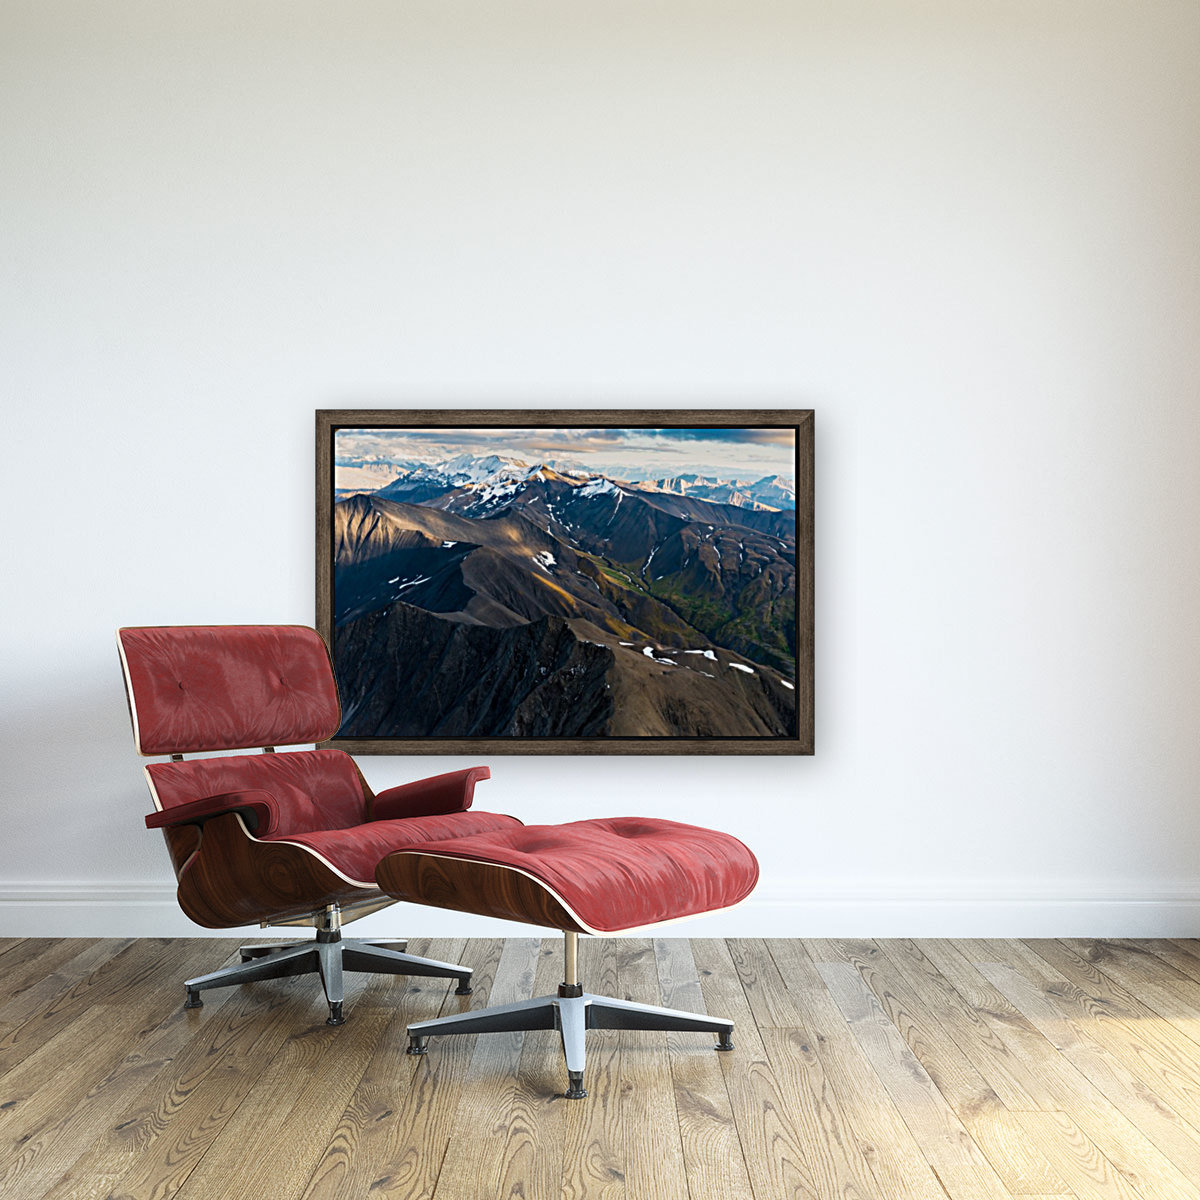 Alaskan Landscape with Floating Frame